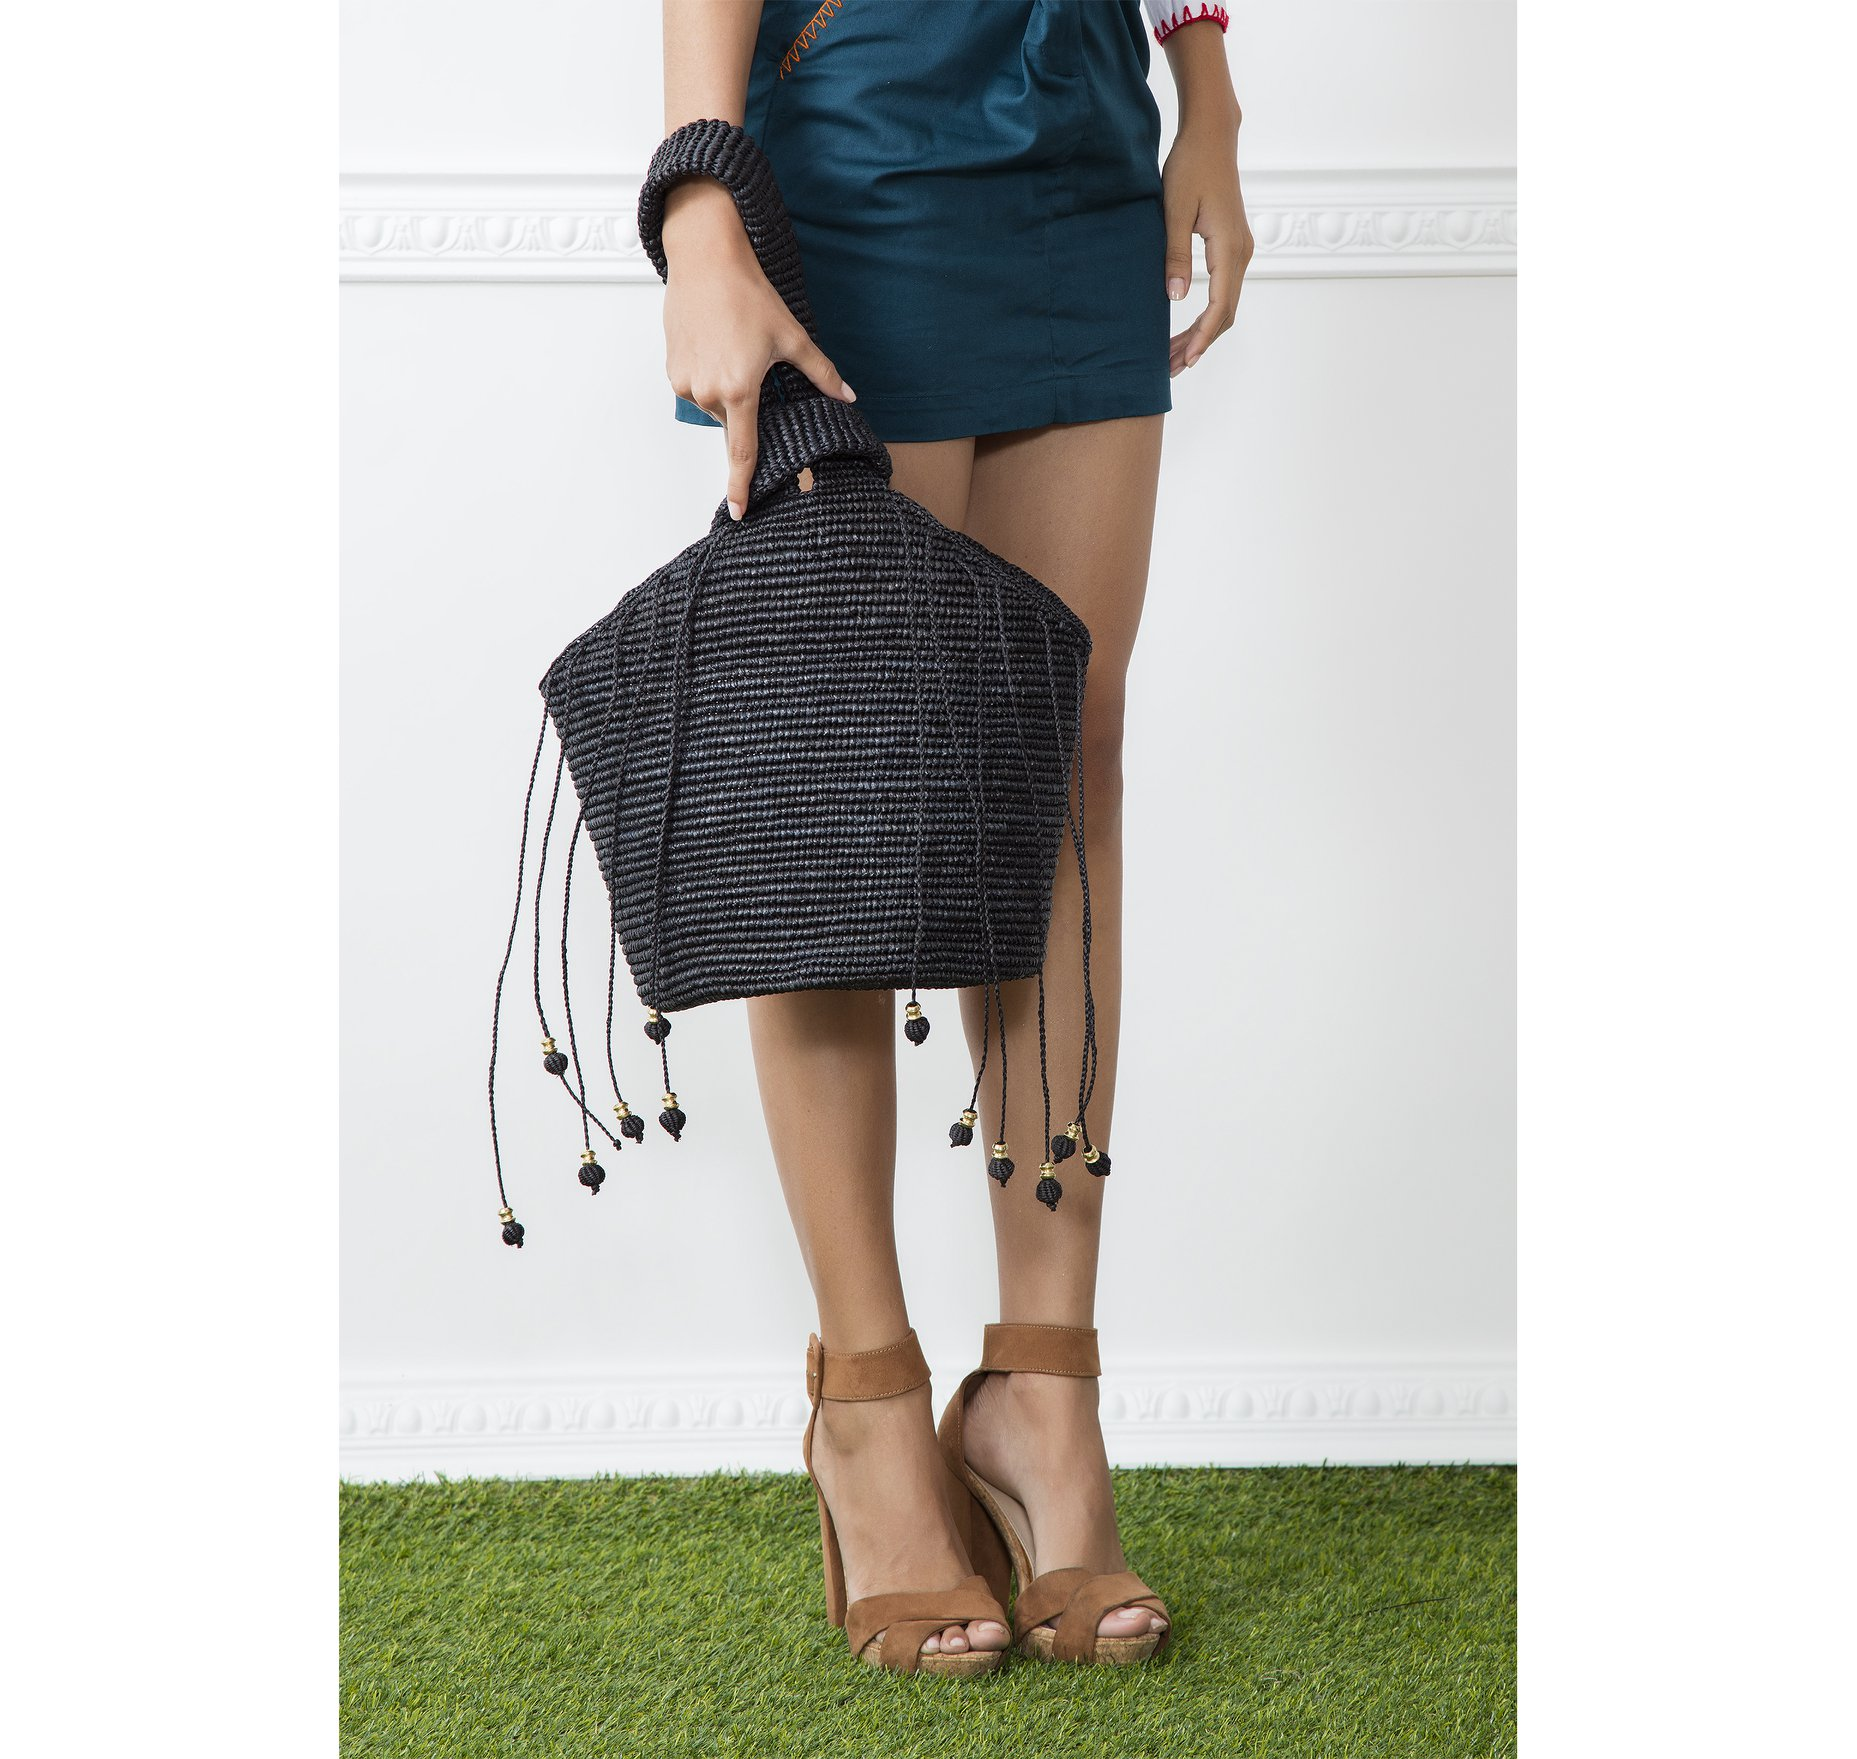 SOFT TOTE PULL THROUGH HANDLE STRING WITH METALLIC DETAILS